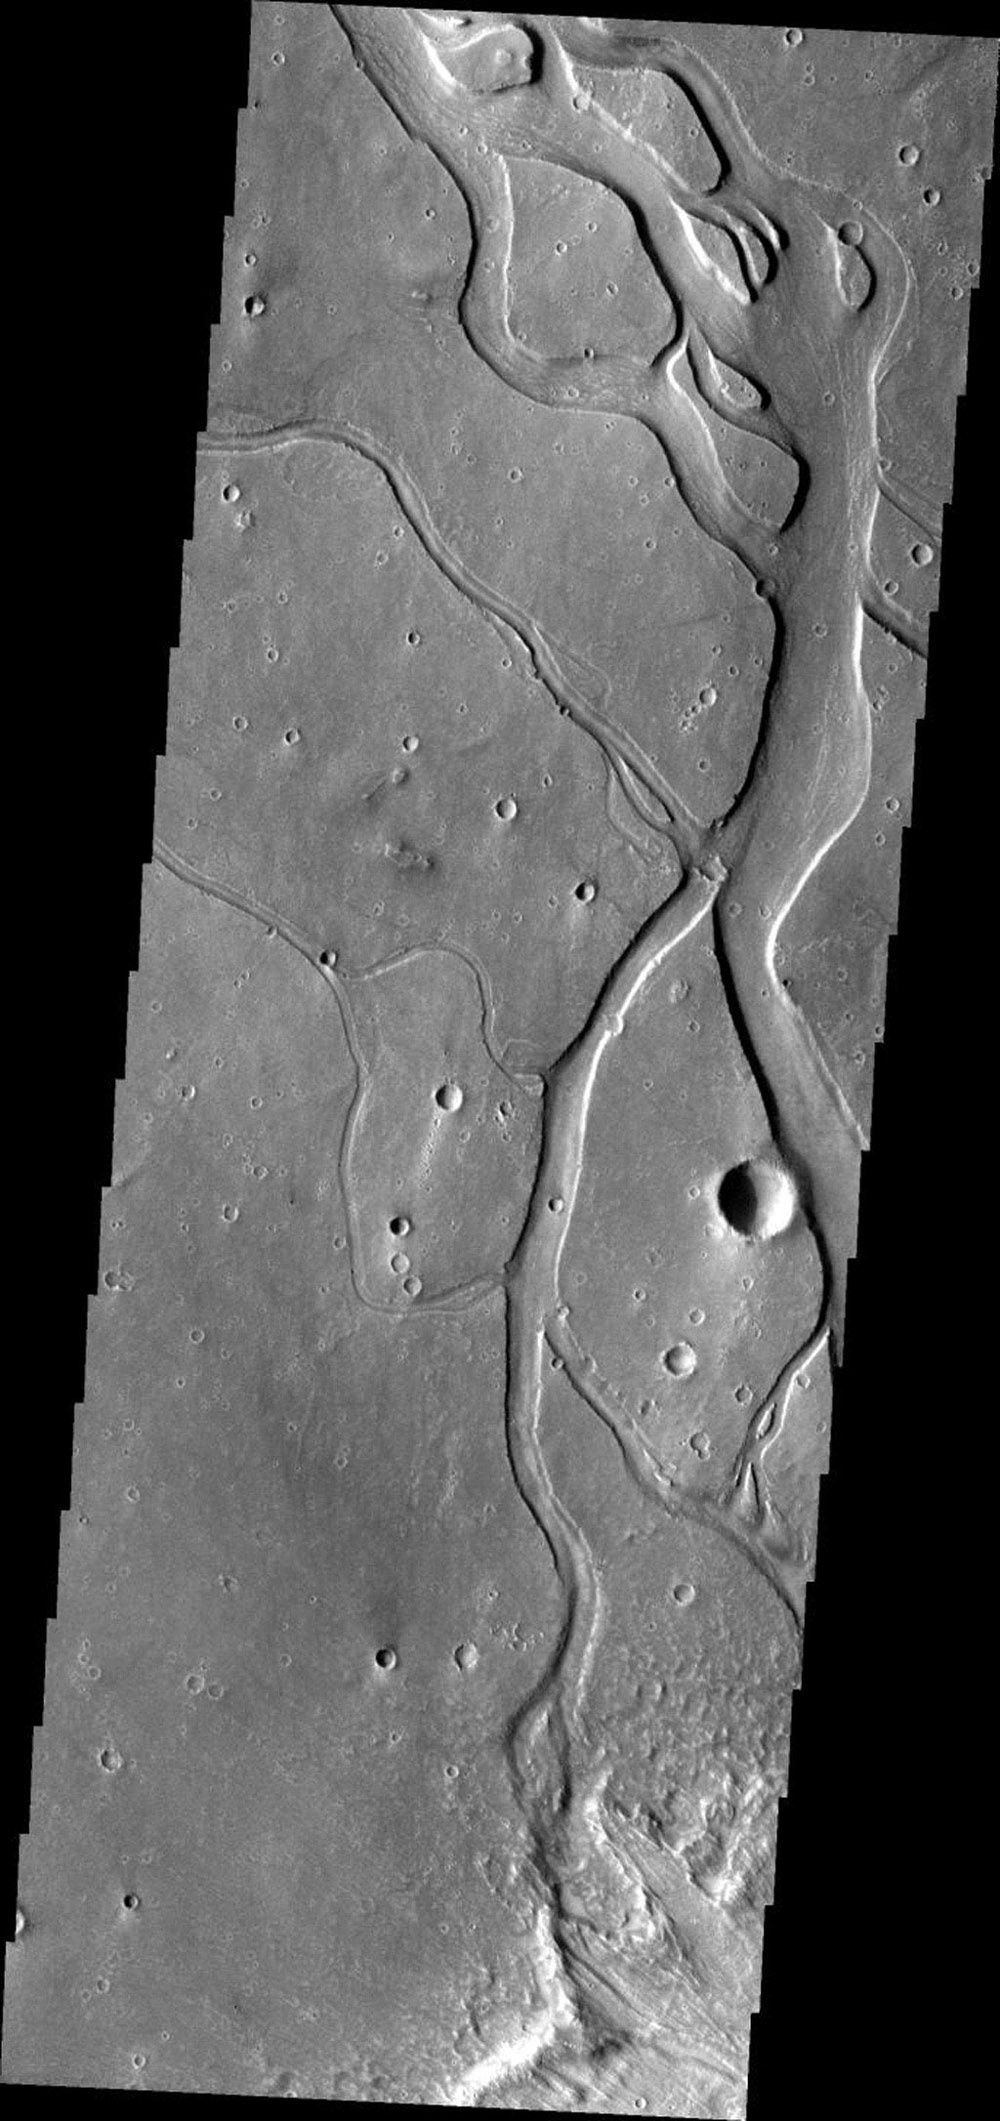 This image from NASA's Mars Odyssey shows channels and streamlined islands, part of Hebrus Valles on Mars.